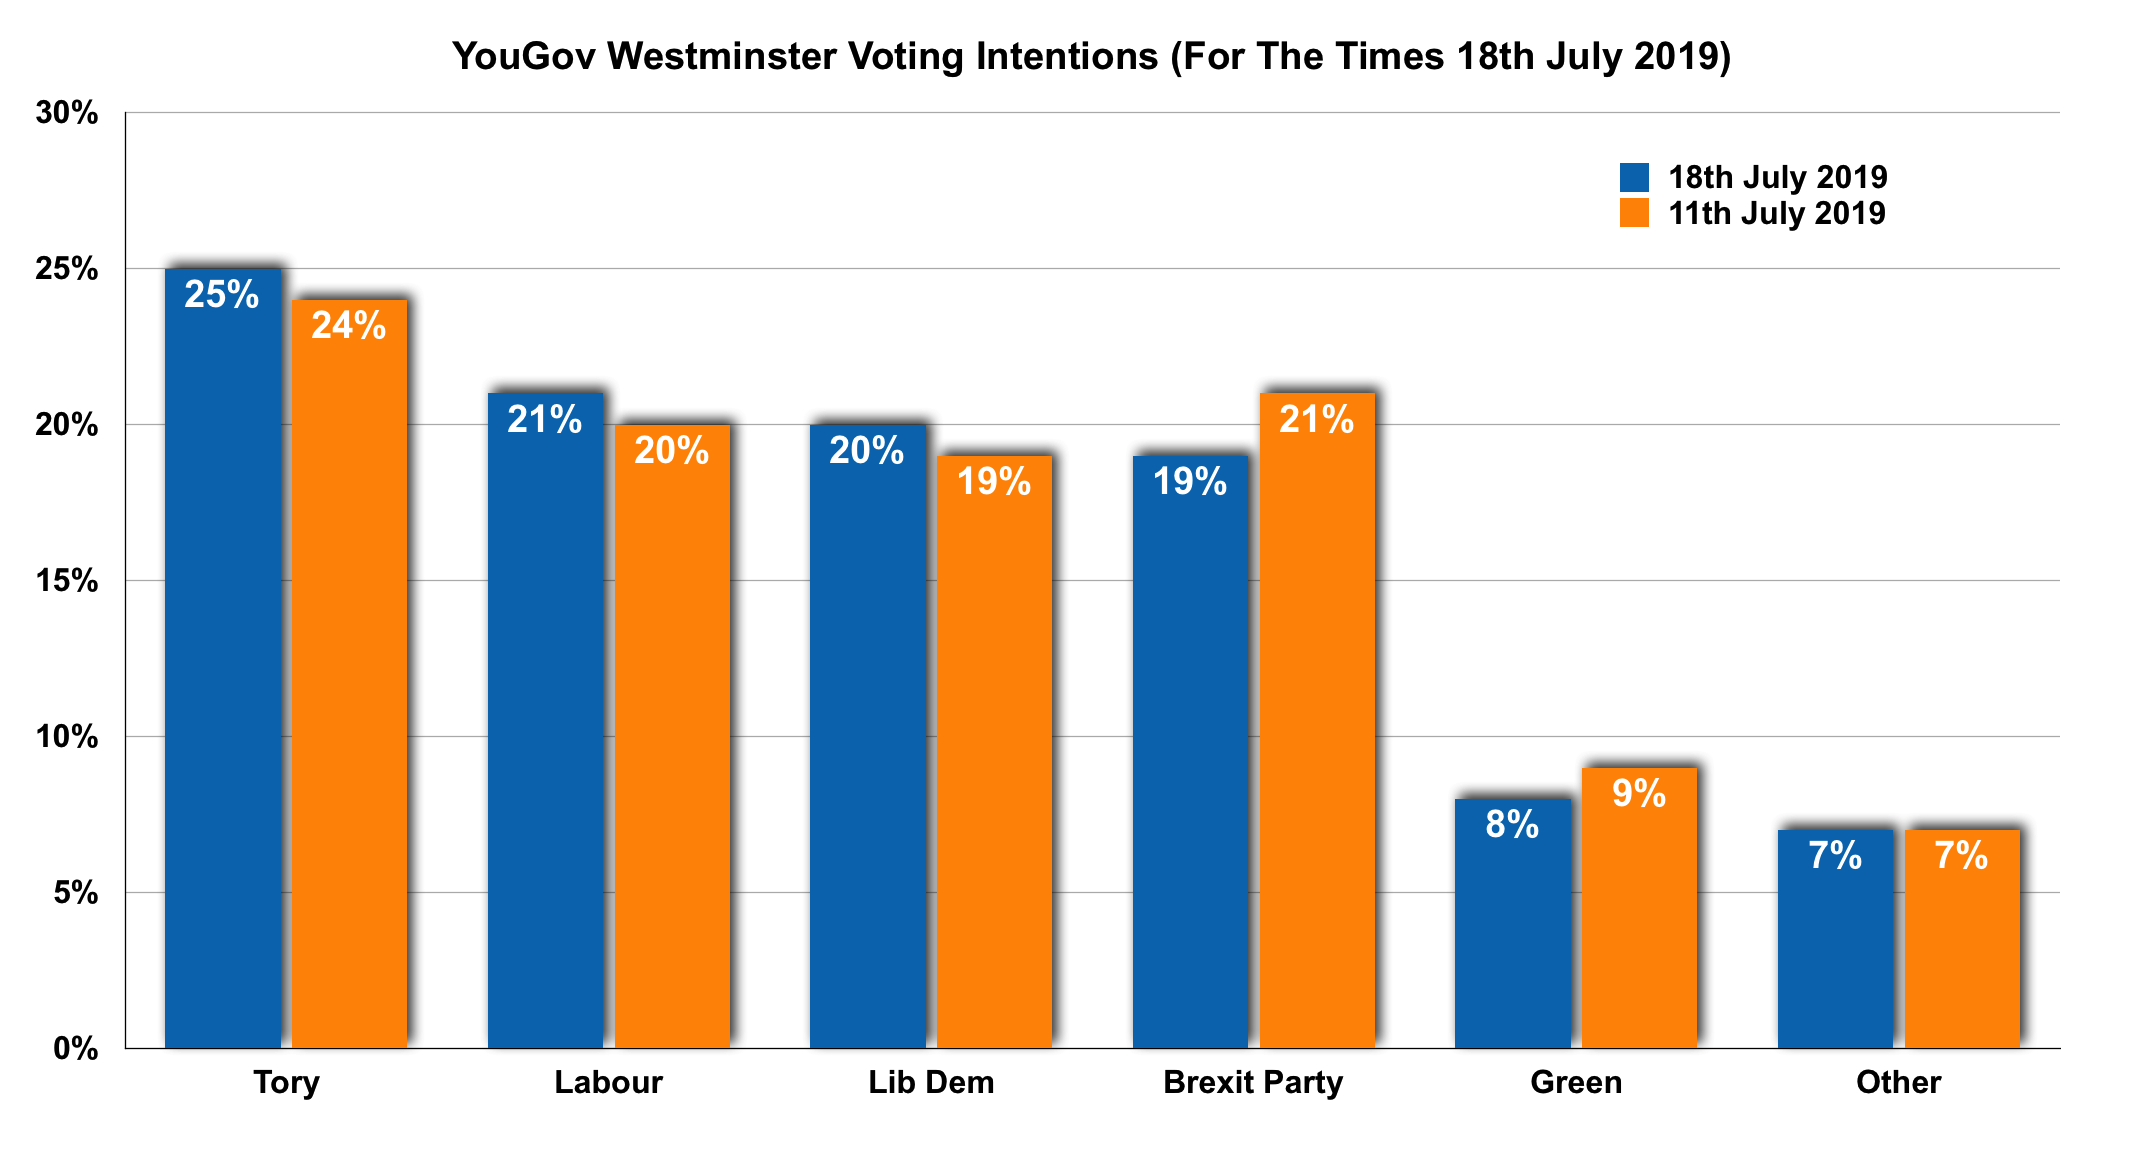 YouGov Times WV! 18-07-19